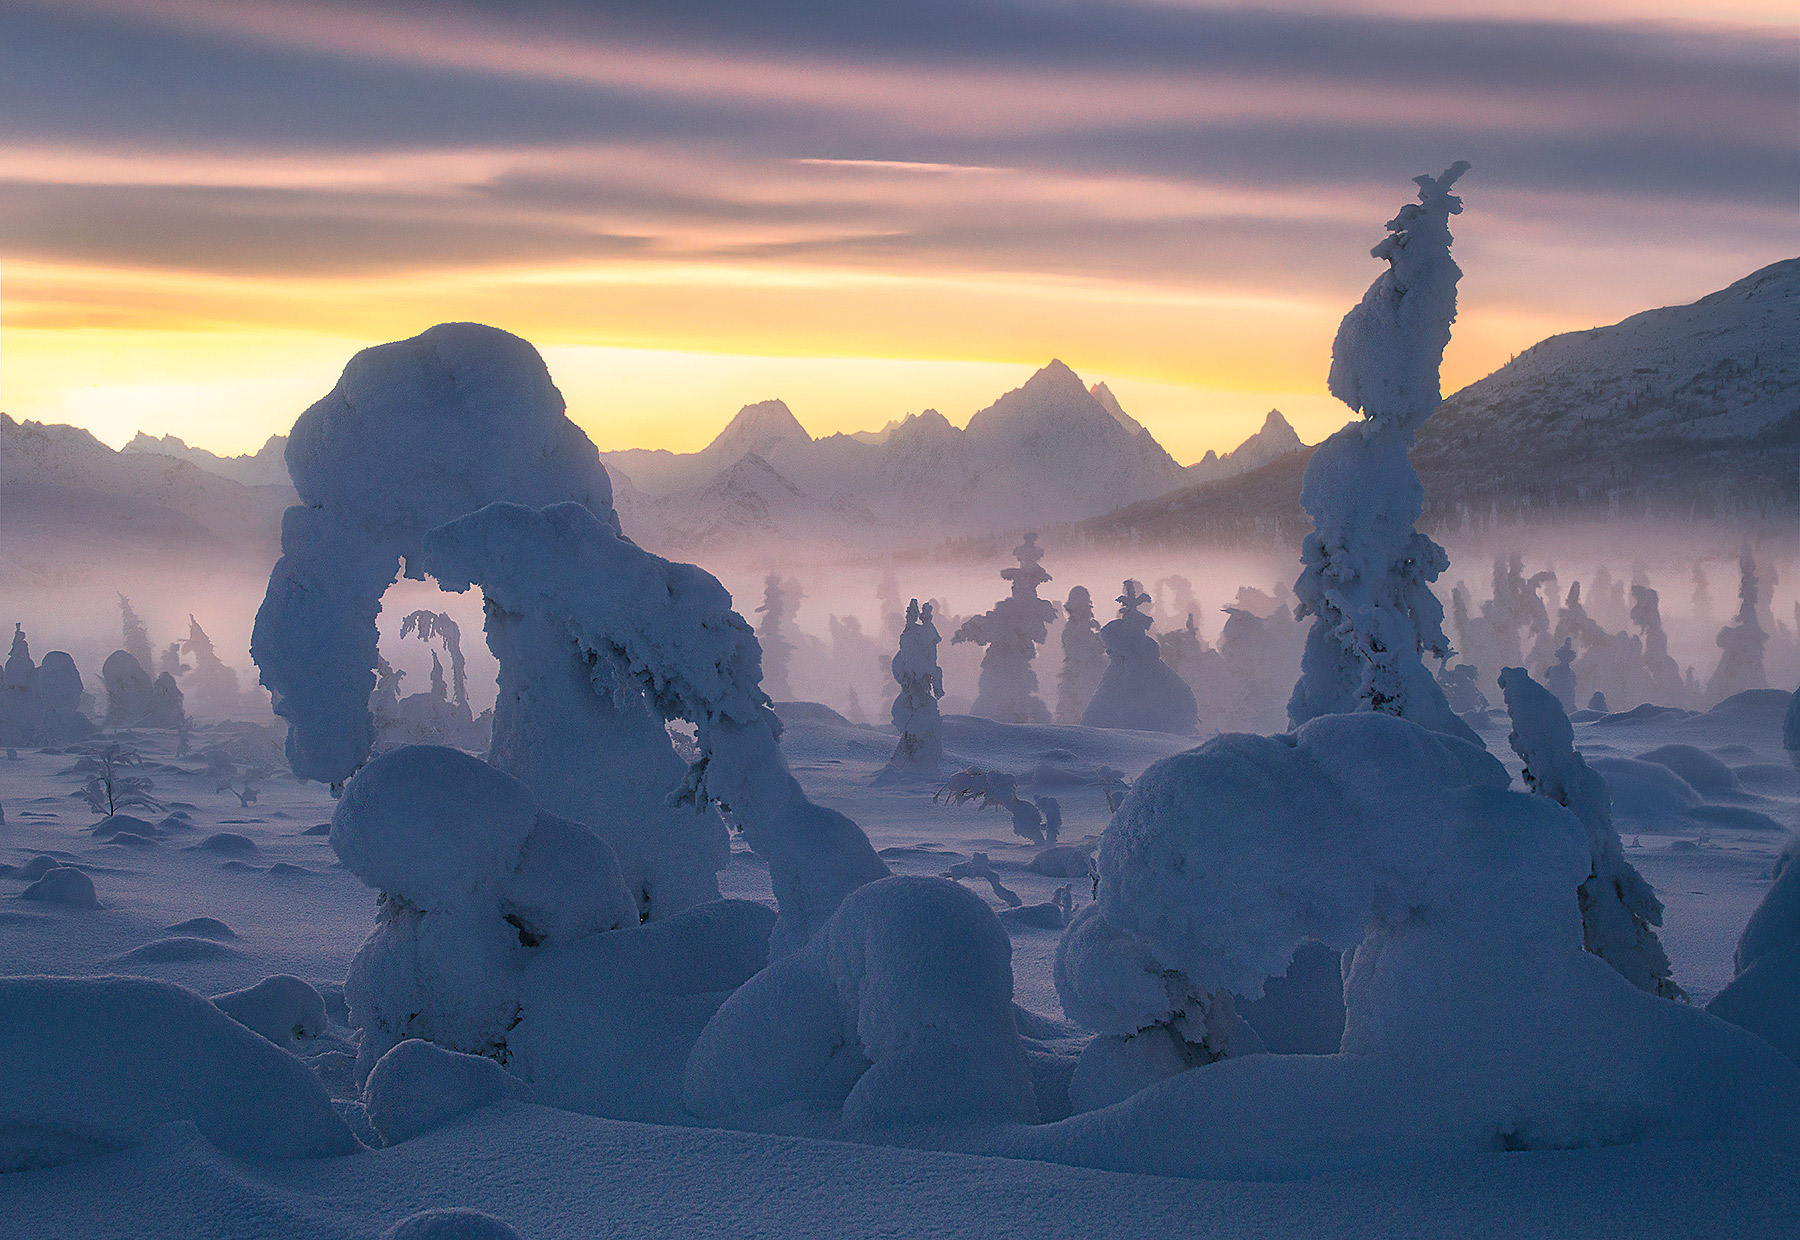 Rime ice covered forest at twilight in Alaska with the Chugach peaks in the background